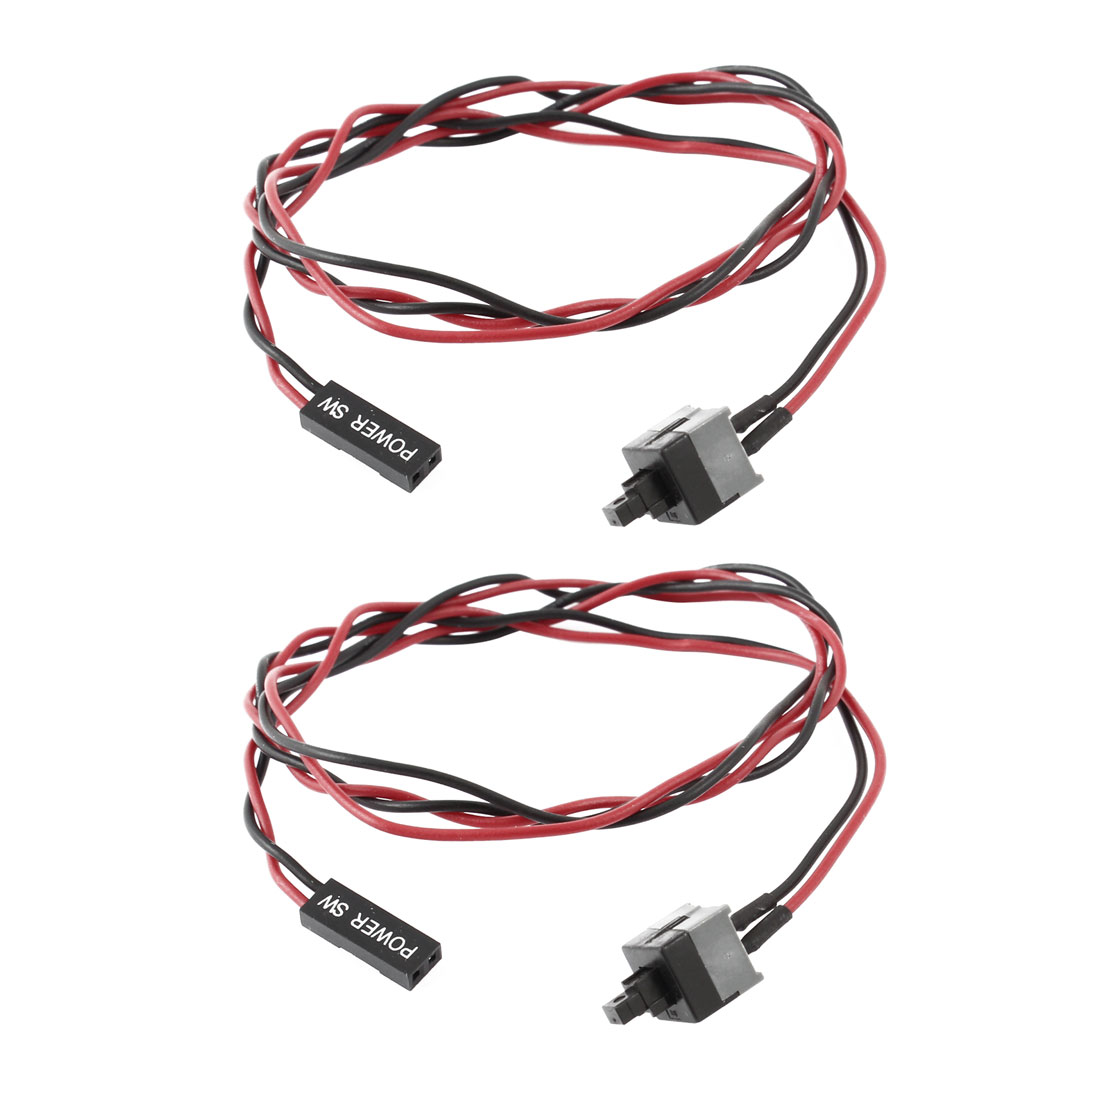 ATX Computer Case Power Supply Reset Switch Cable Cord Wire Line 2 Pcs